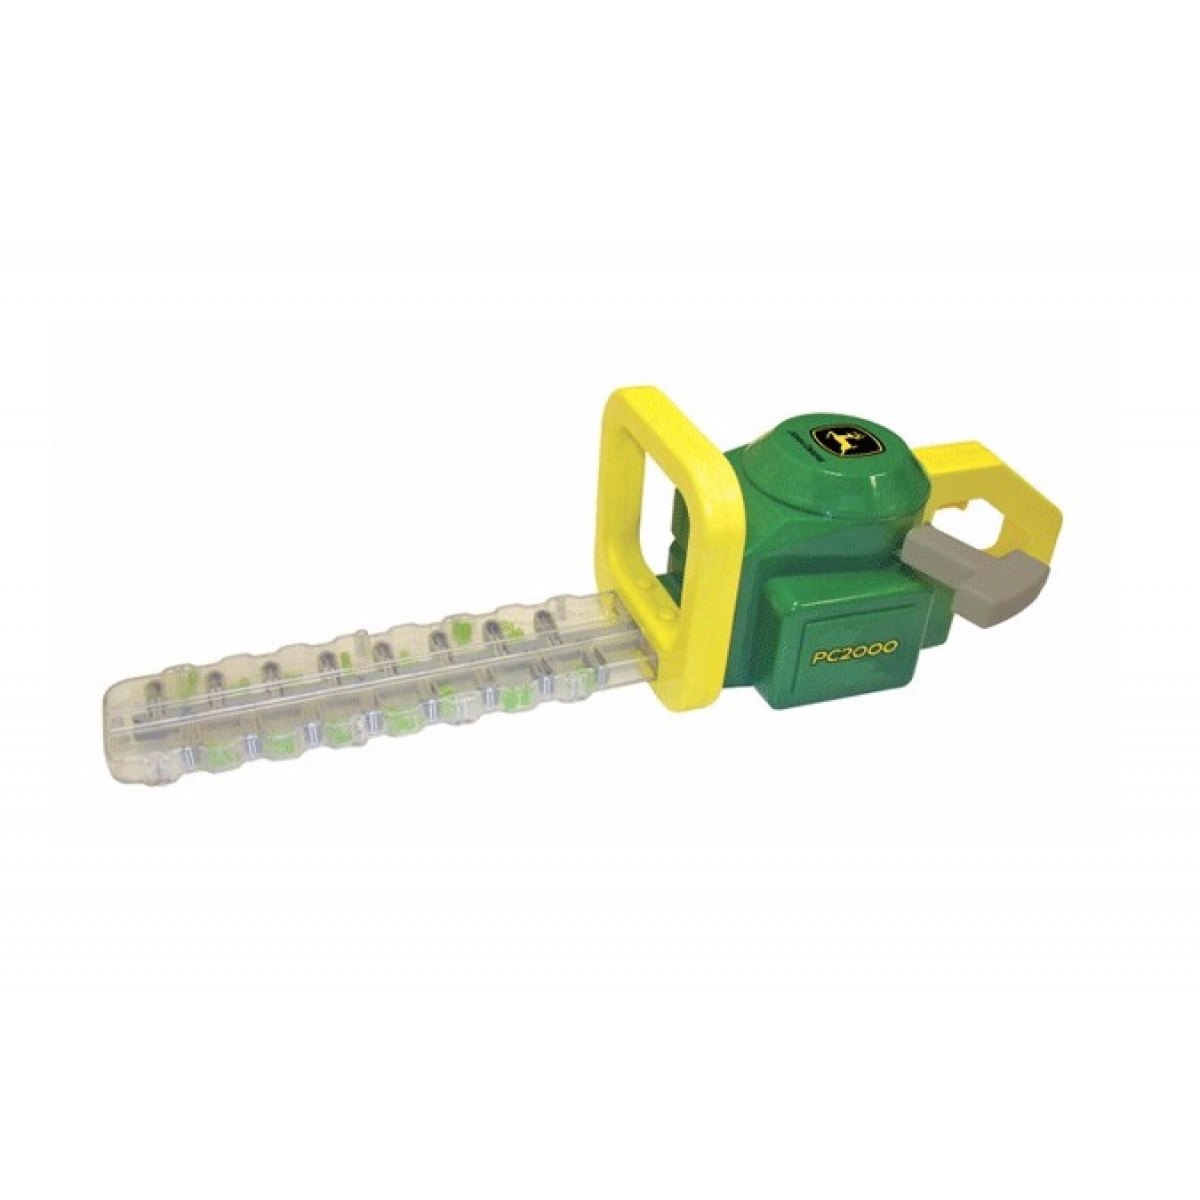 Power Hedge Trimmer : John deere power hedge trimmer role play tools